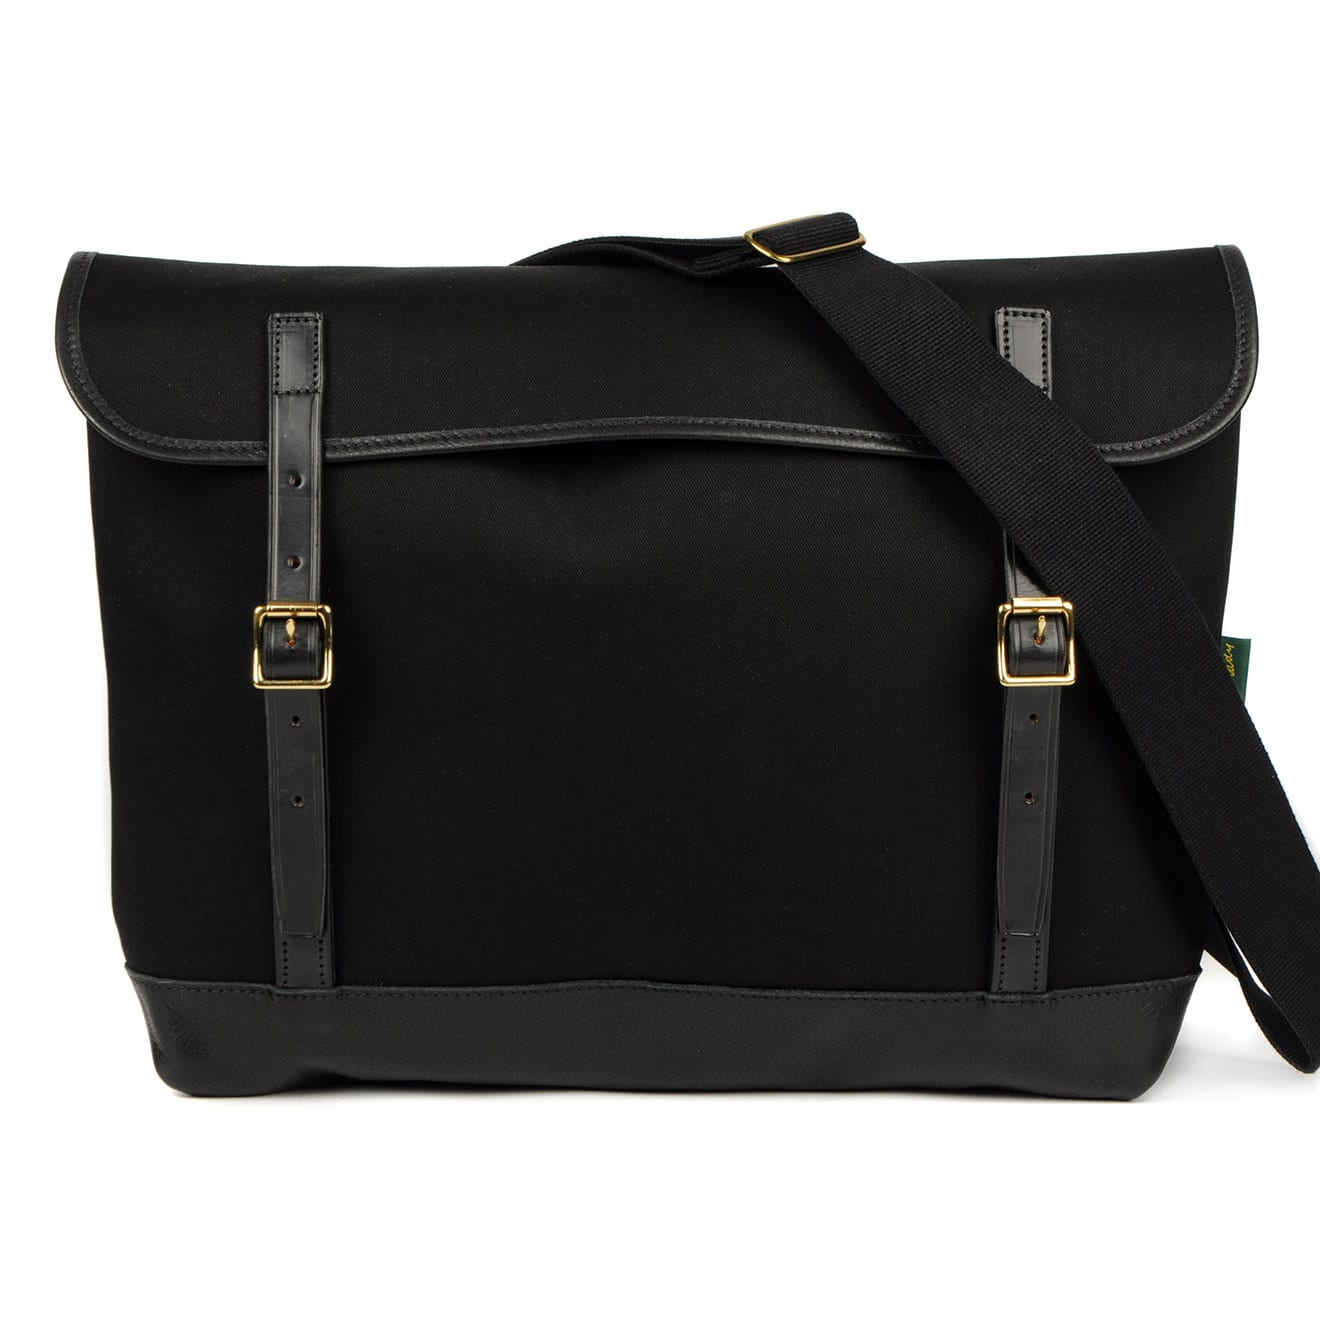 Brady Maclaren Shoulder Bag Black Leather